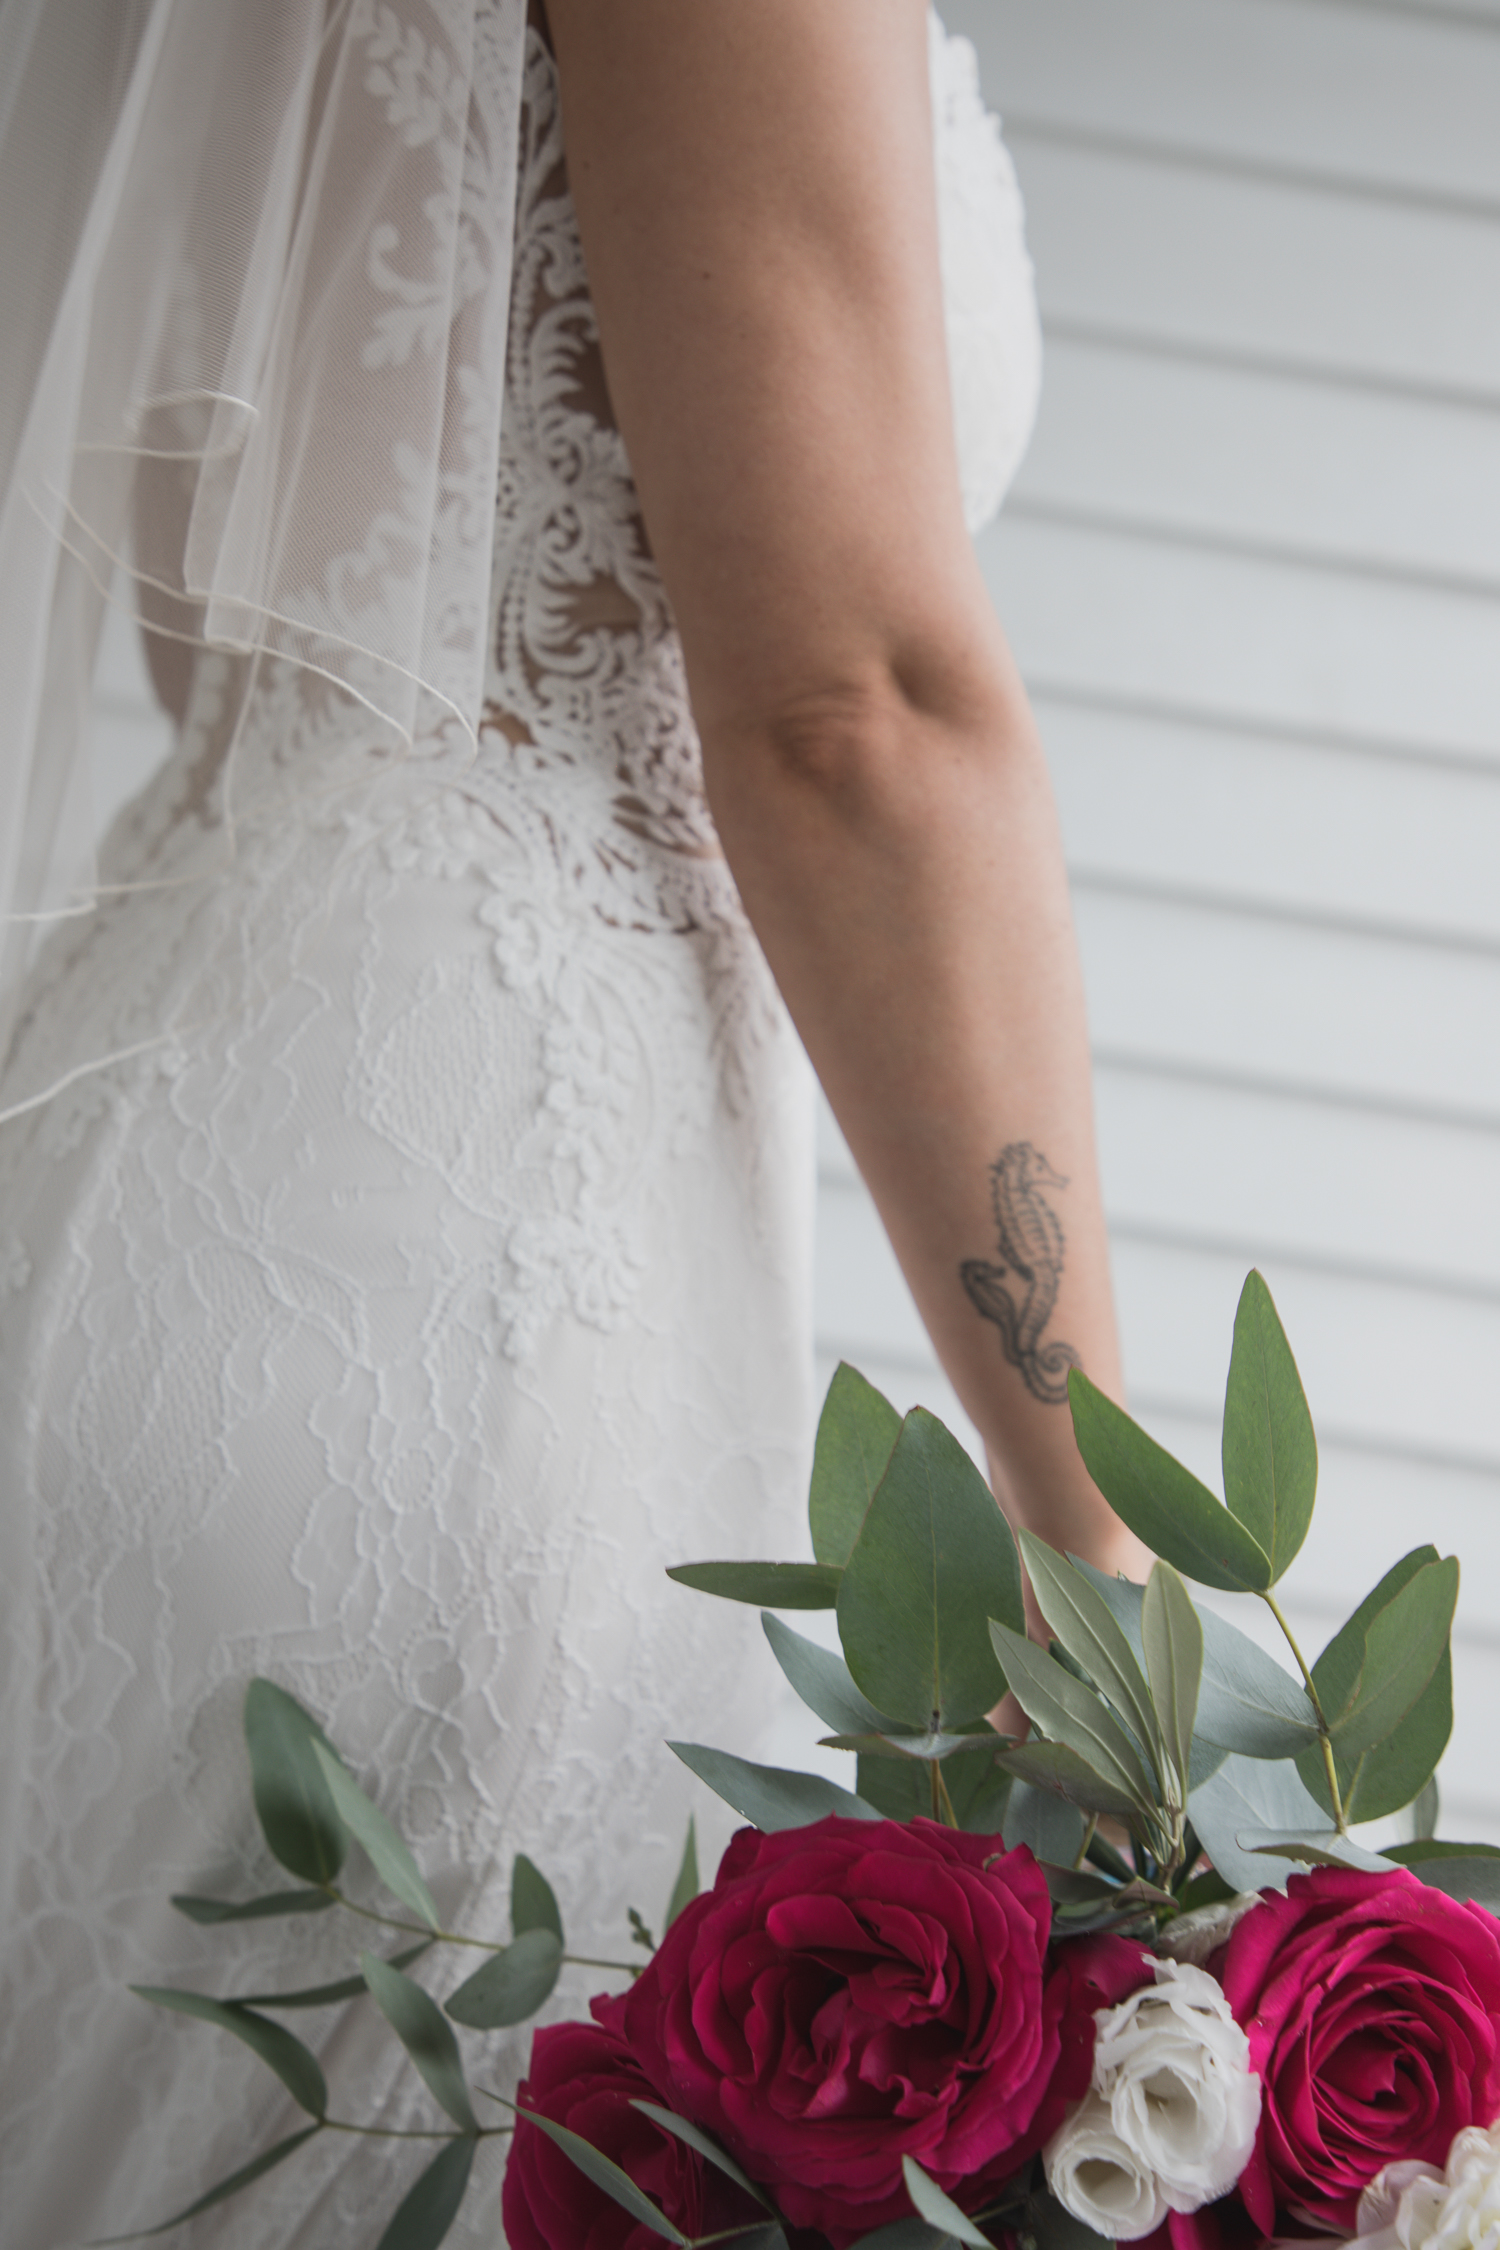 bride-standing-outside-house-with-amazing-detail-on-dress-and-florals-with-seahorse-tattoo.jpg